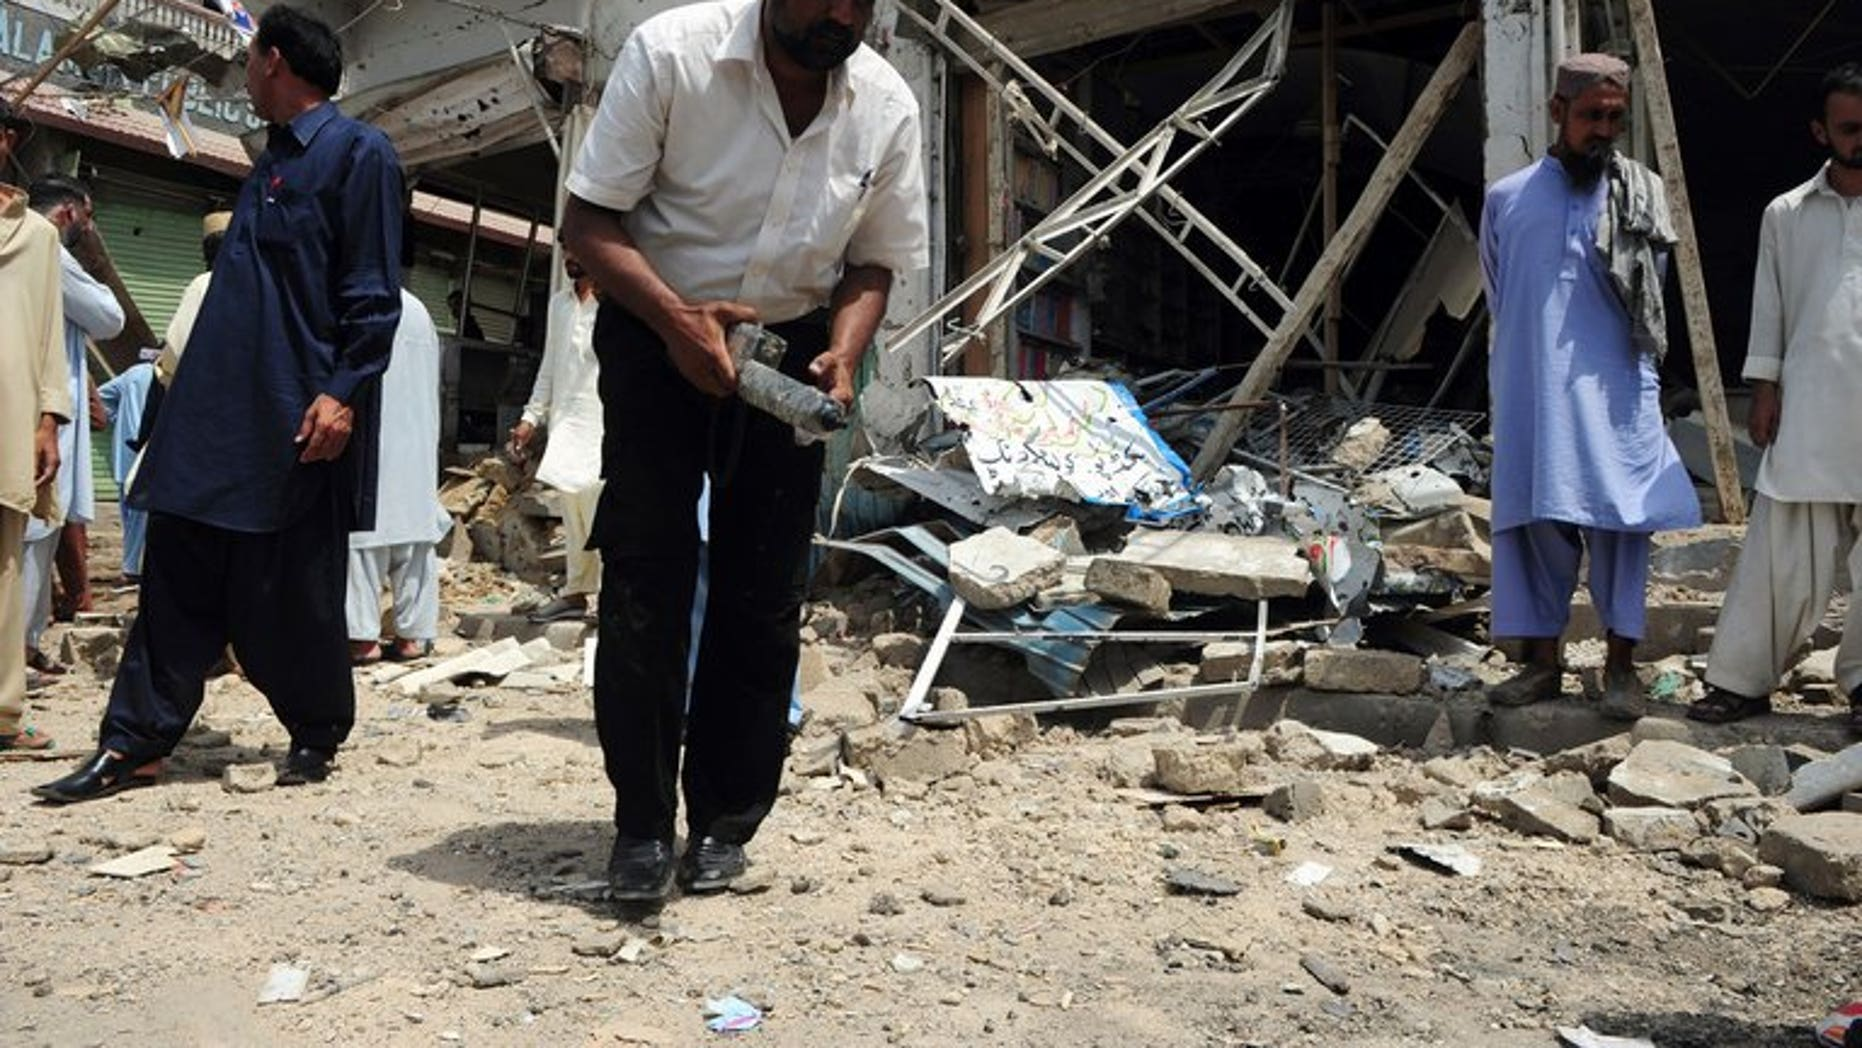 A Pakistani bomb disposal expert examines the site of an explosion in Karachi, on May 11, 2013. A bomb targeting one of Pakistani President Asif Ali Zardari's senior personal security officers has killed at least three people in Karachi.